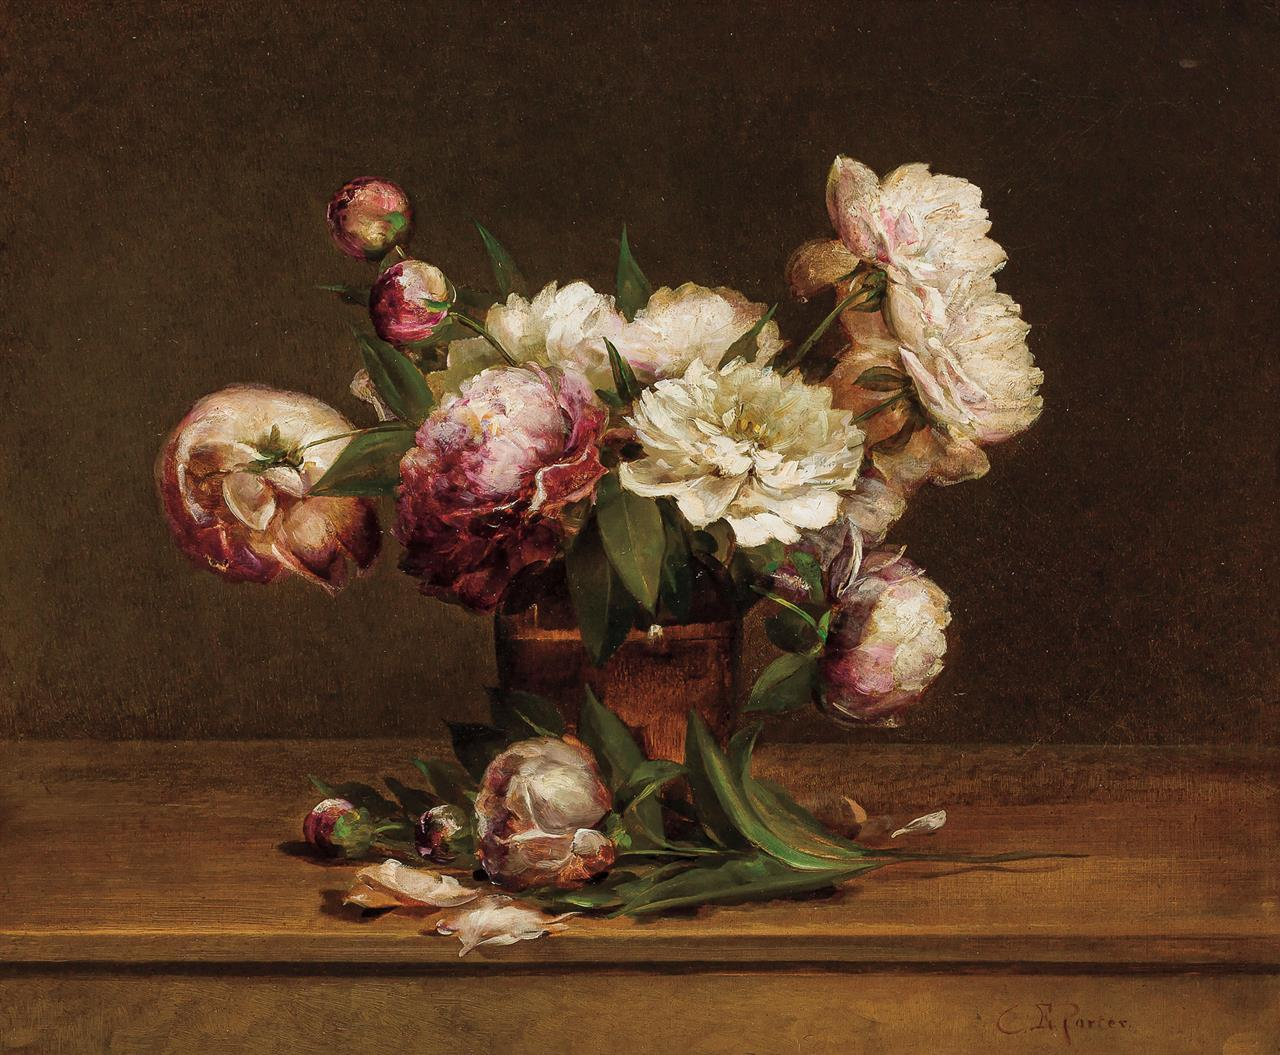 """CHARLES ETHAN PORTER, American (1847-1923), Peonies, oil on canvas, signed lower right """"C.E. Porter"""", 20 x 24 inches"""